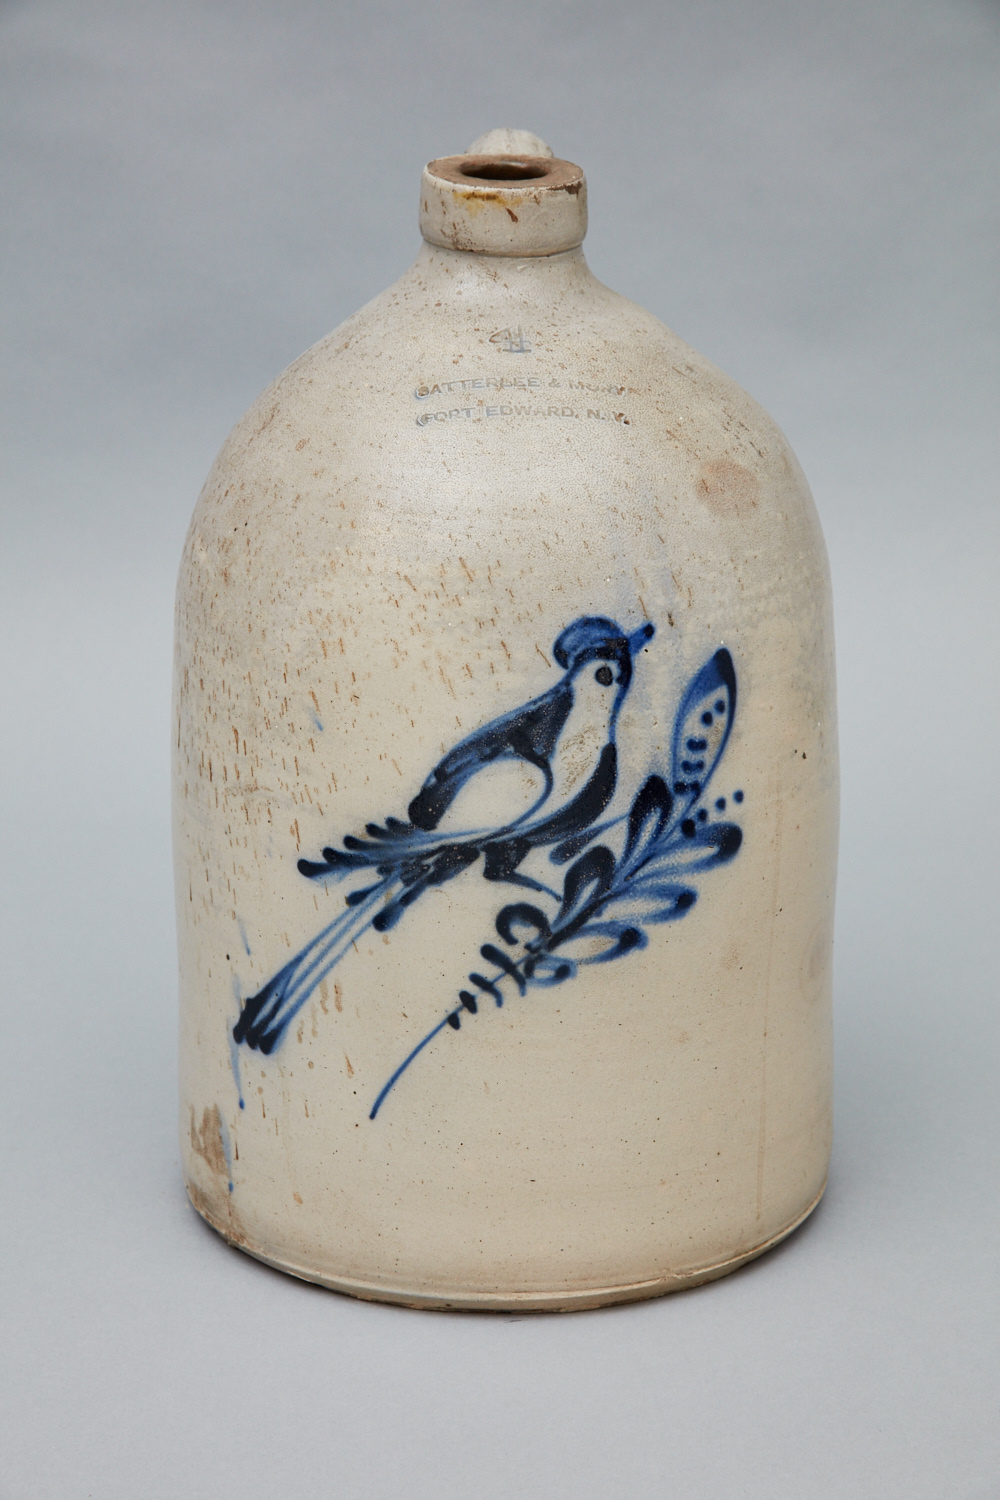 Stoneware Jug, Church Family, Mount Lebanon, NY, 1861-1885